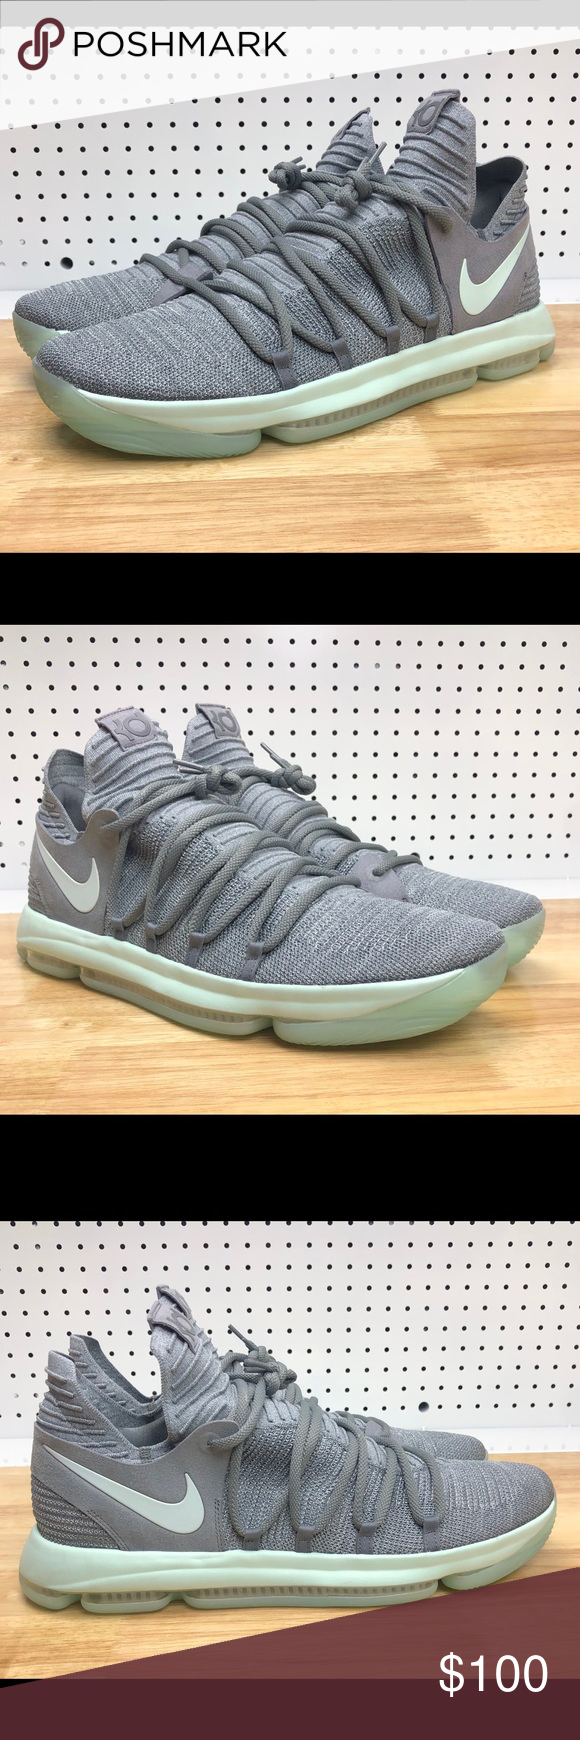 size 40 b012c 4cf24 Nike Zoom KD 10 X Igloo Mens Cool Grey Basketball Nike Zoom KD 10 X Igloo Mens  Cool Grey Basketball Shoes - Men s Size 18 - 897815-002 - NEW WITHOUT BOX  ...